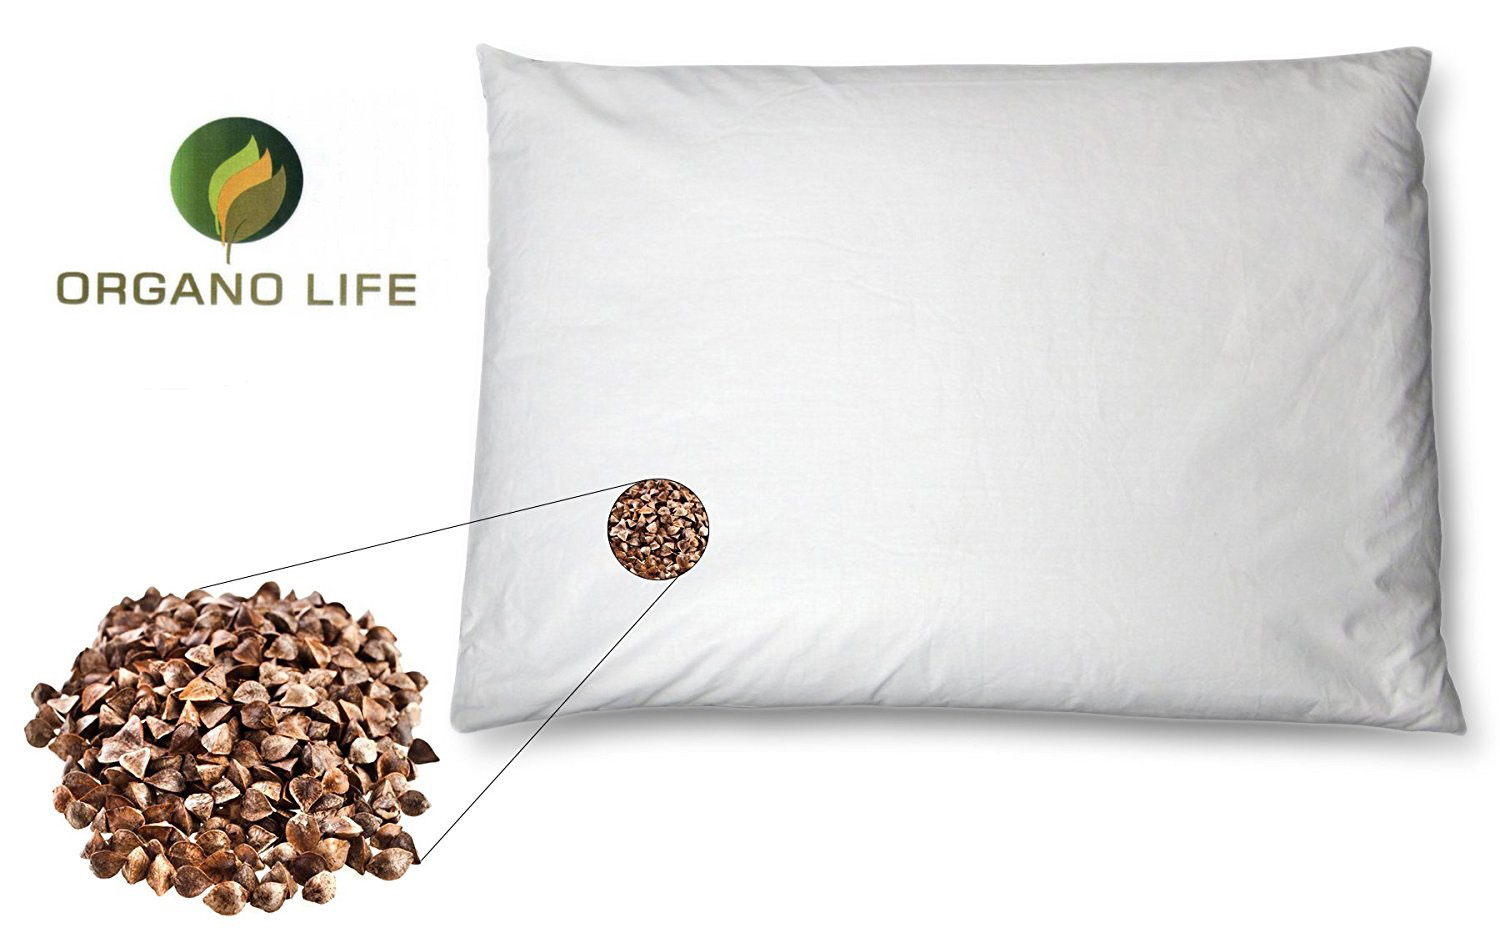 Why buckwheat pillow?